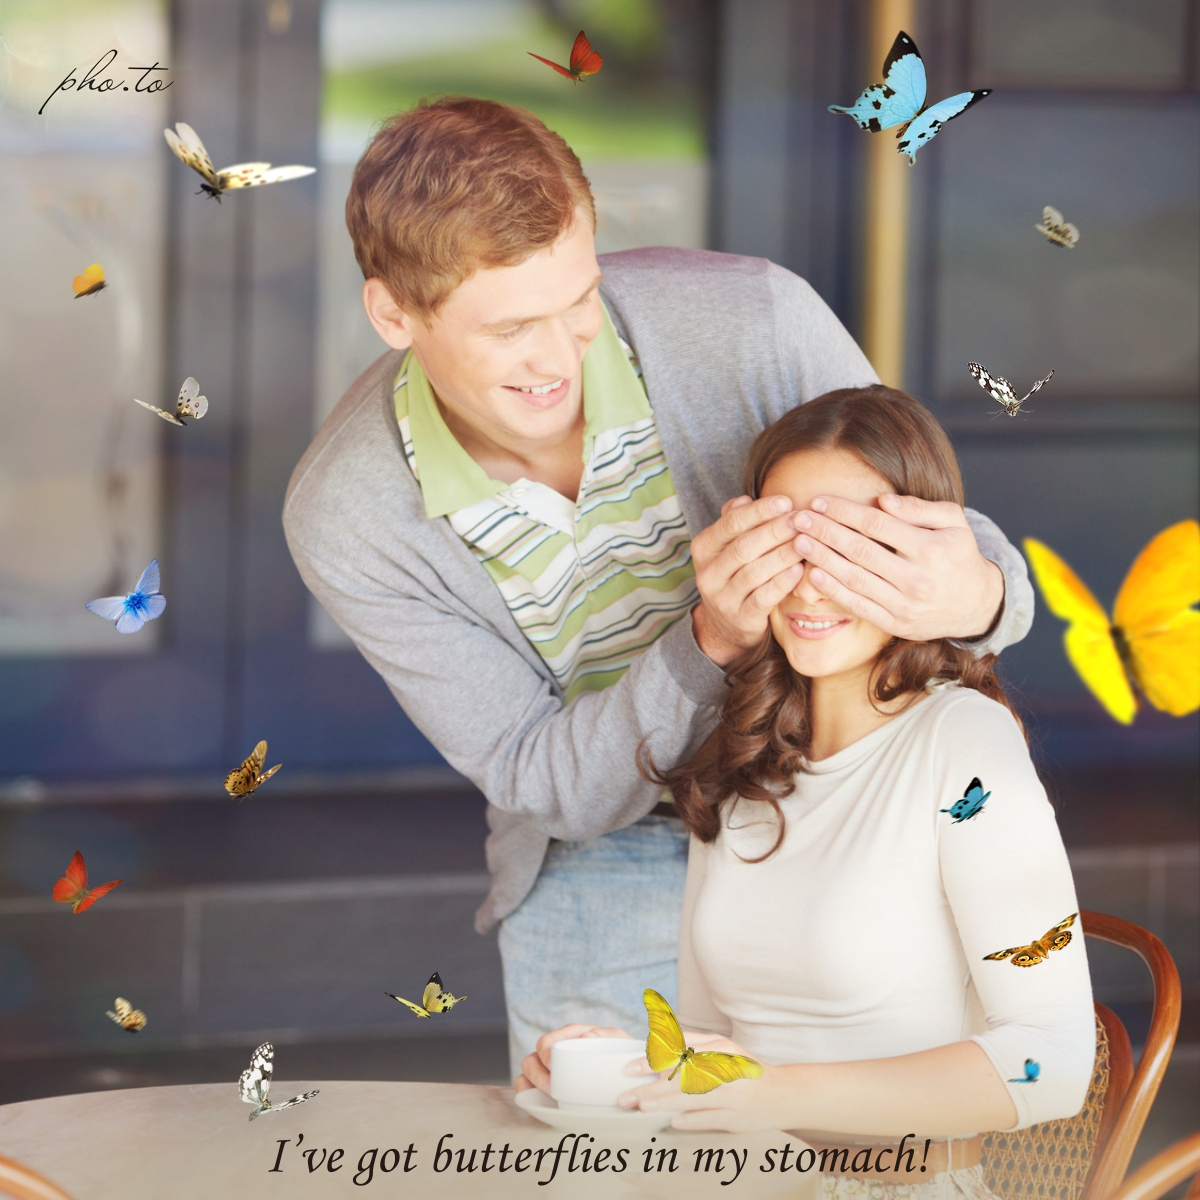 A couple in love with butterflies all around, added as overlay online